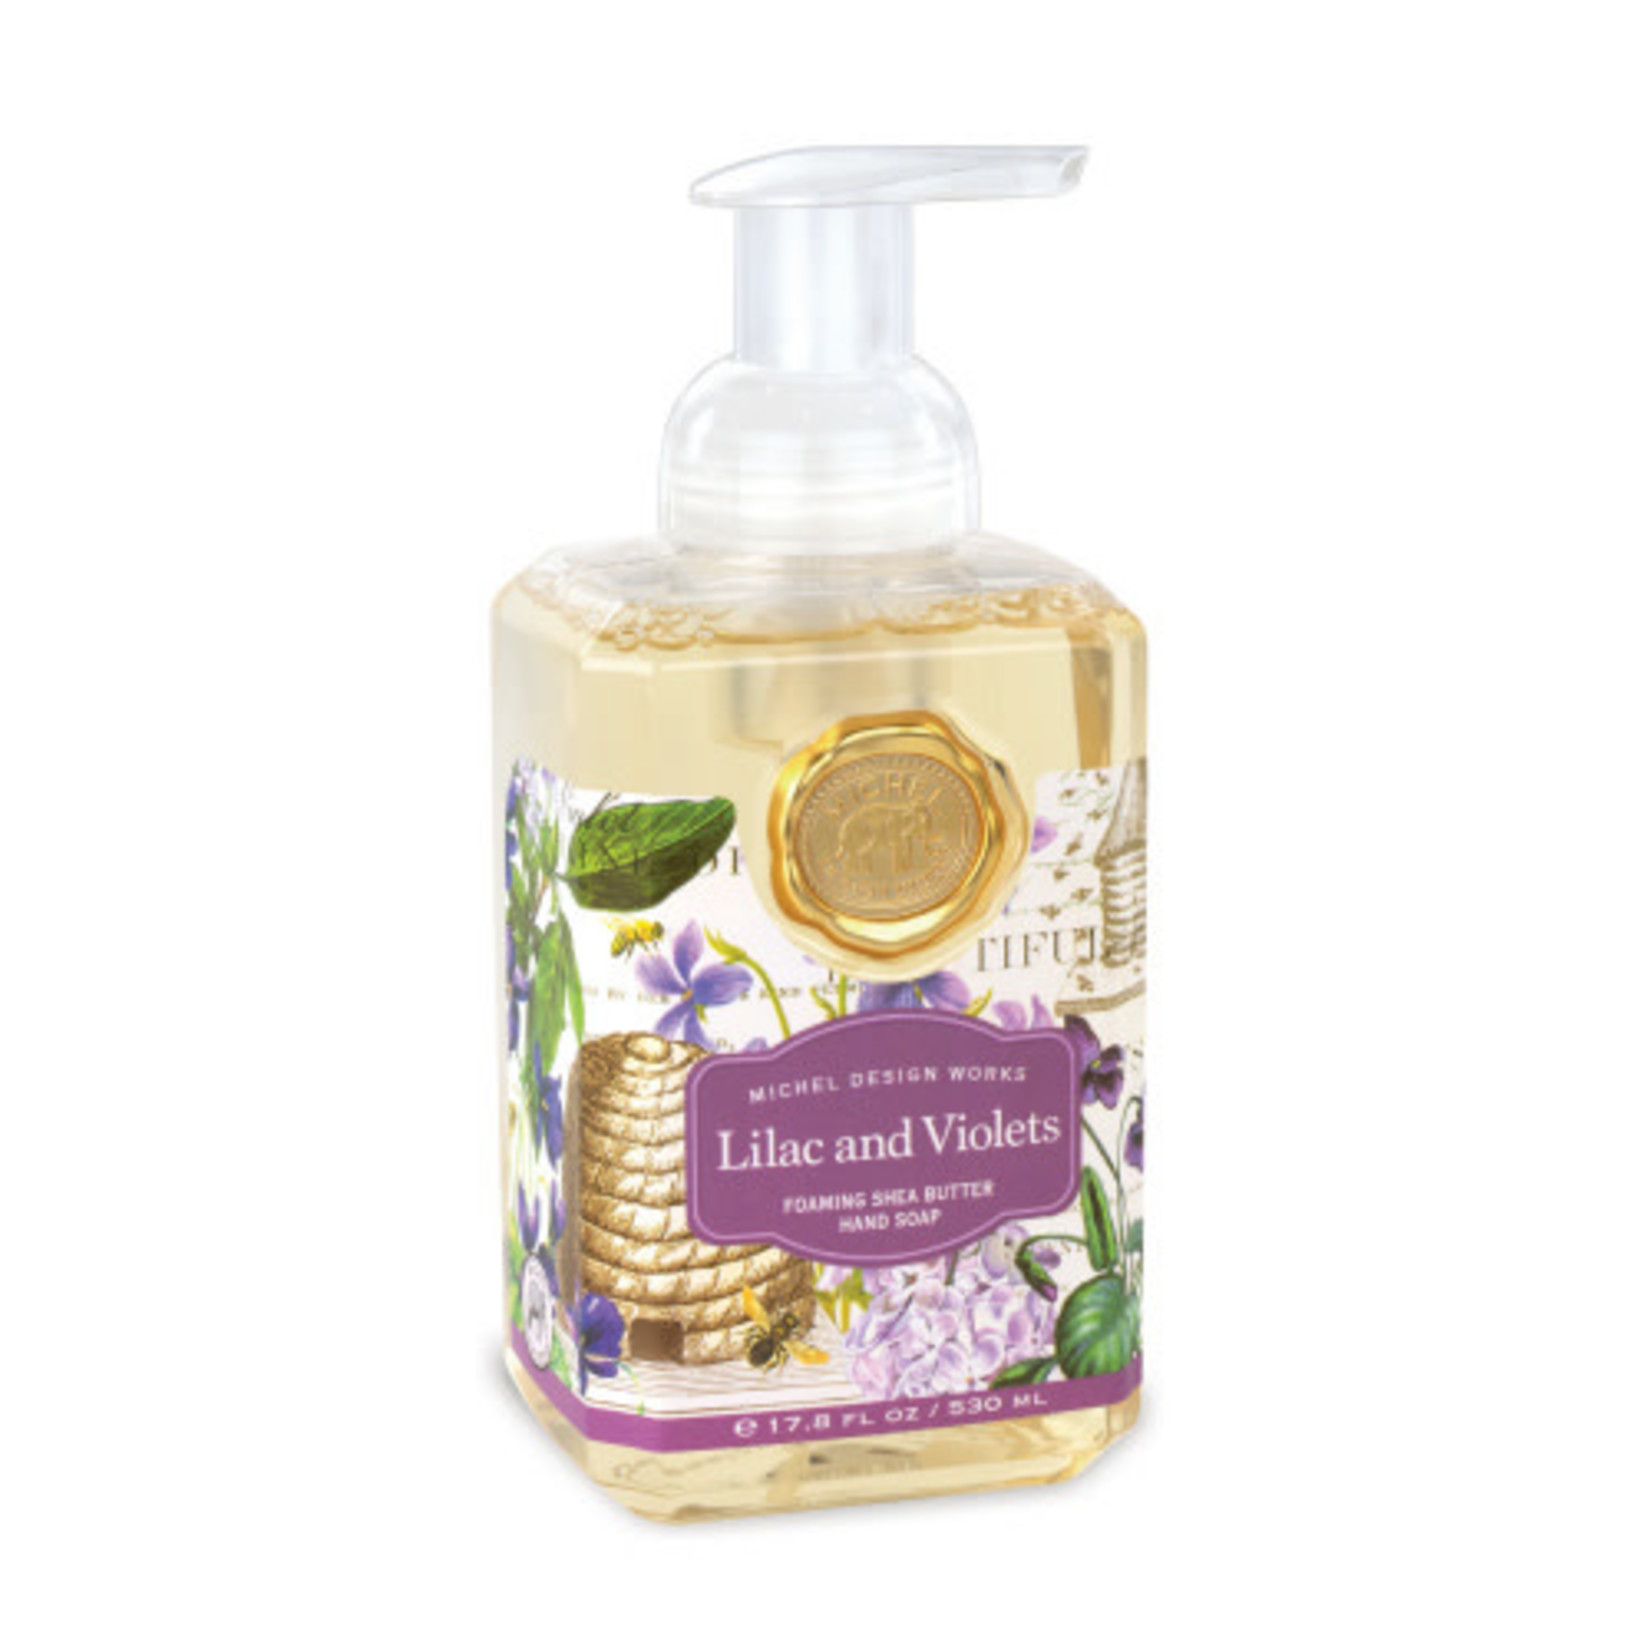 Lilac and Violets Foaming Soap